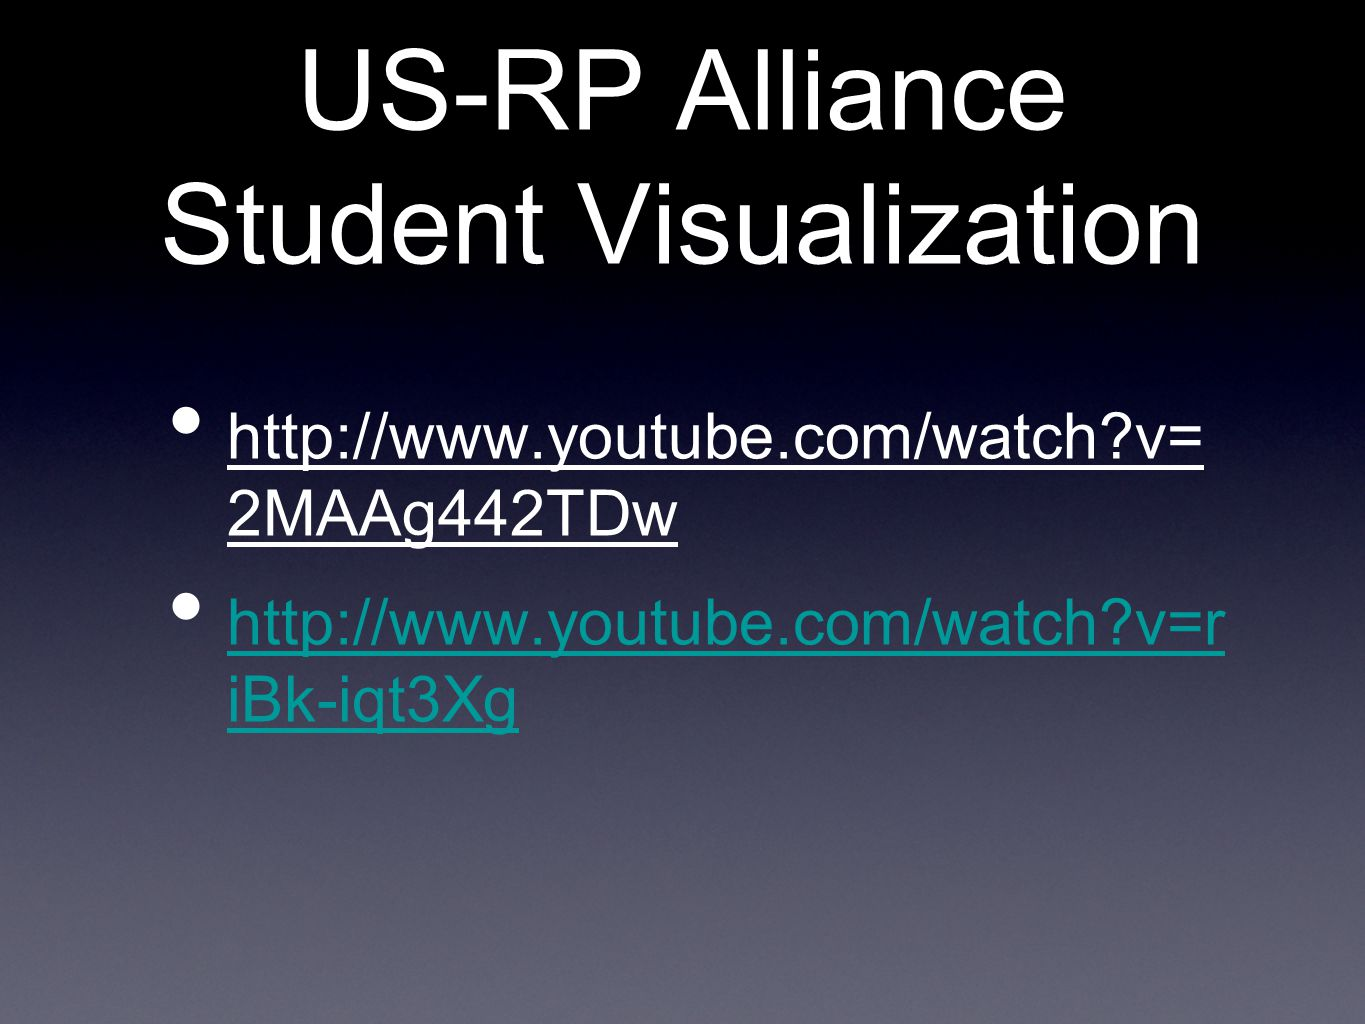 US-RP Alliance Student Visualization http://www.youtube.com/watch v= 2MAAg442TDw http://www.youtube.com/watch v=r iBk-iqt3Xg http://www.youtube.com/watch v=r iBk-iqt3Xg